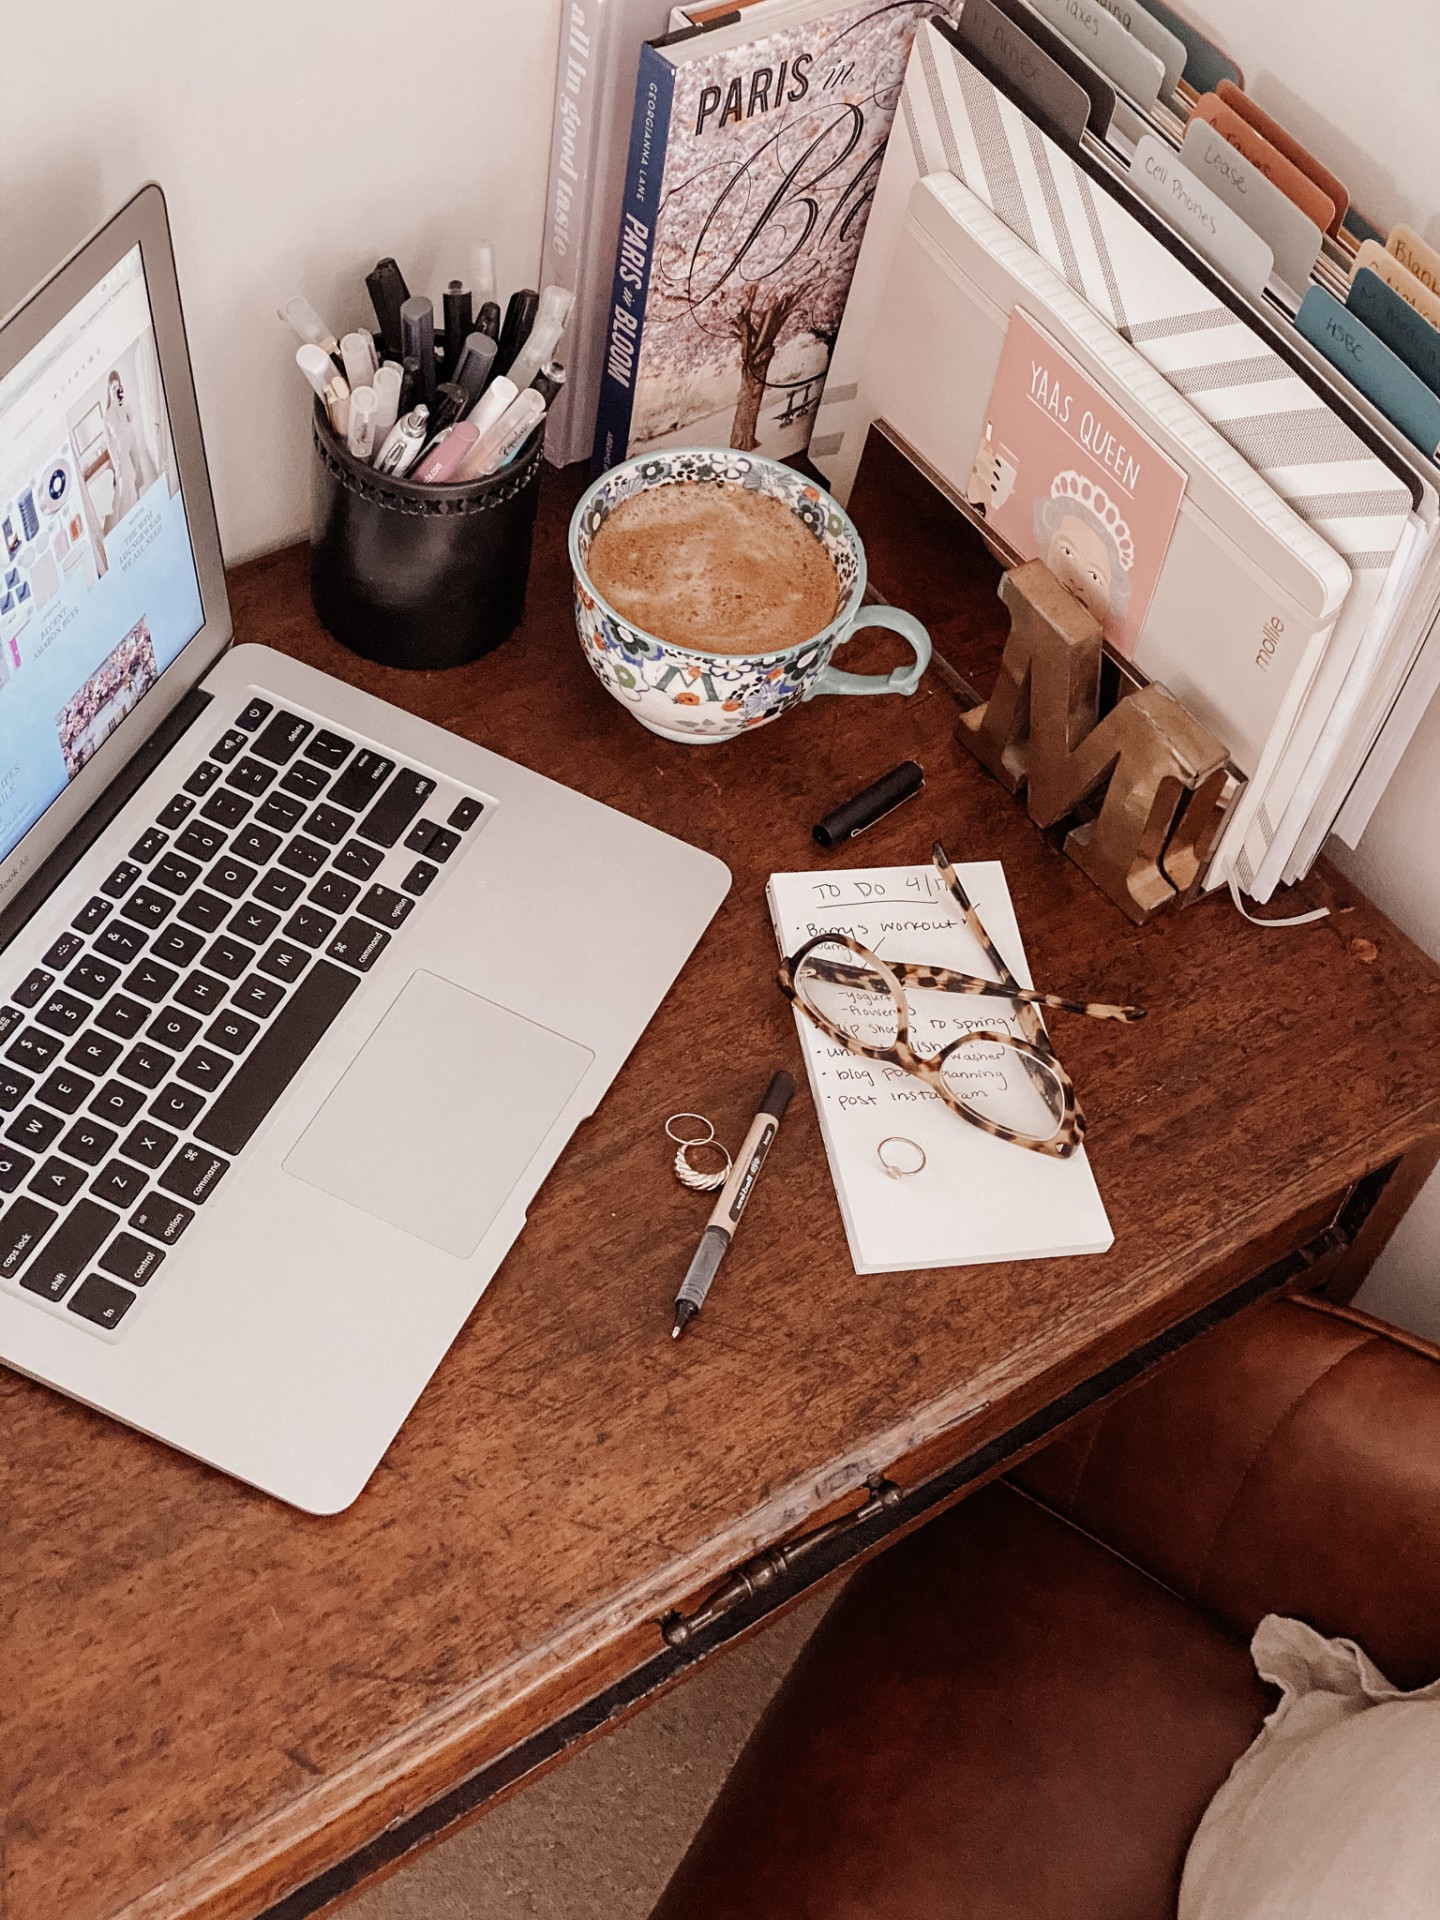 Lifestyle blogger Mollie Moore shares work from home tips